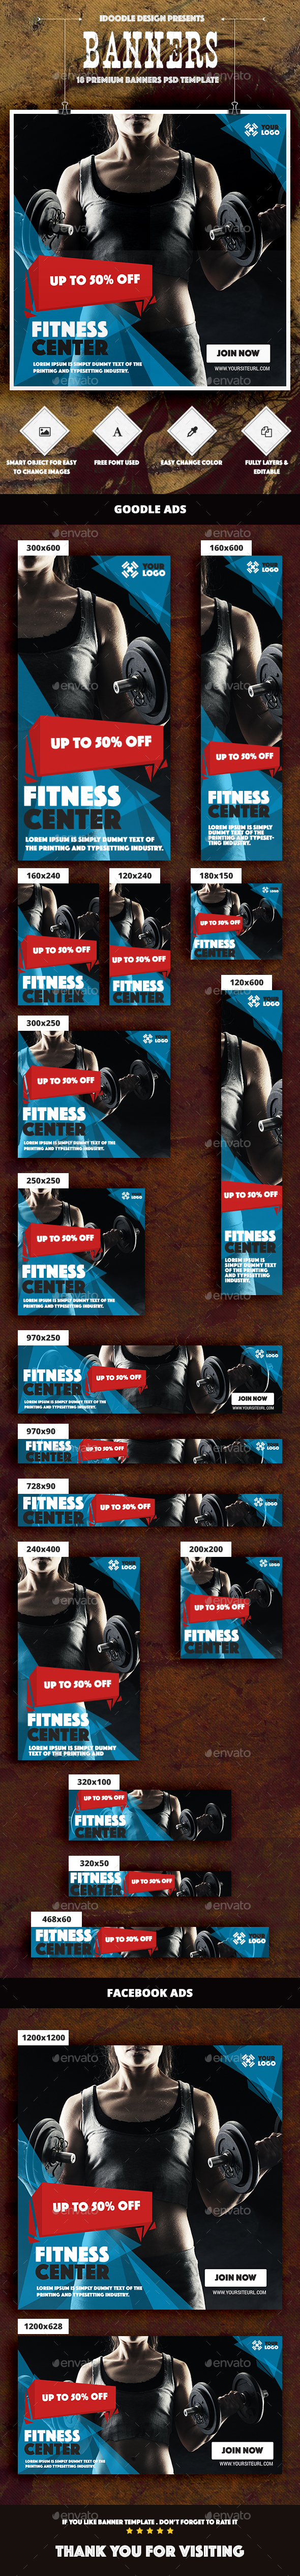 Banners Fitness Ad - Banners & Ads Web Elements